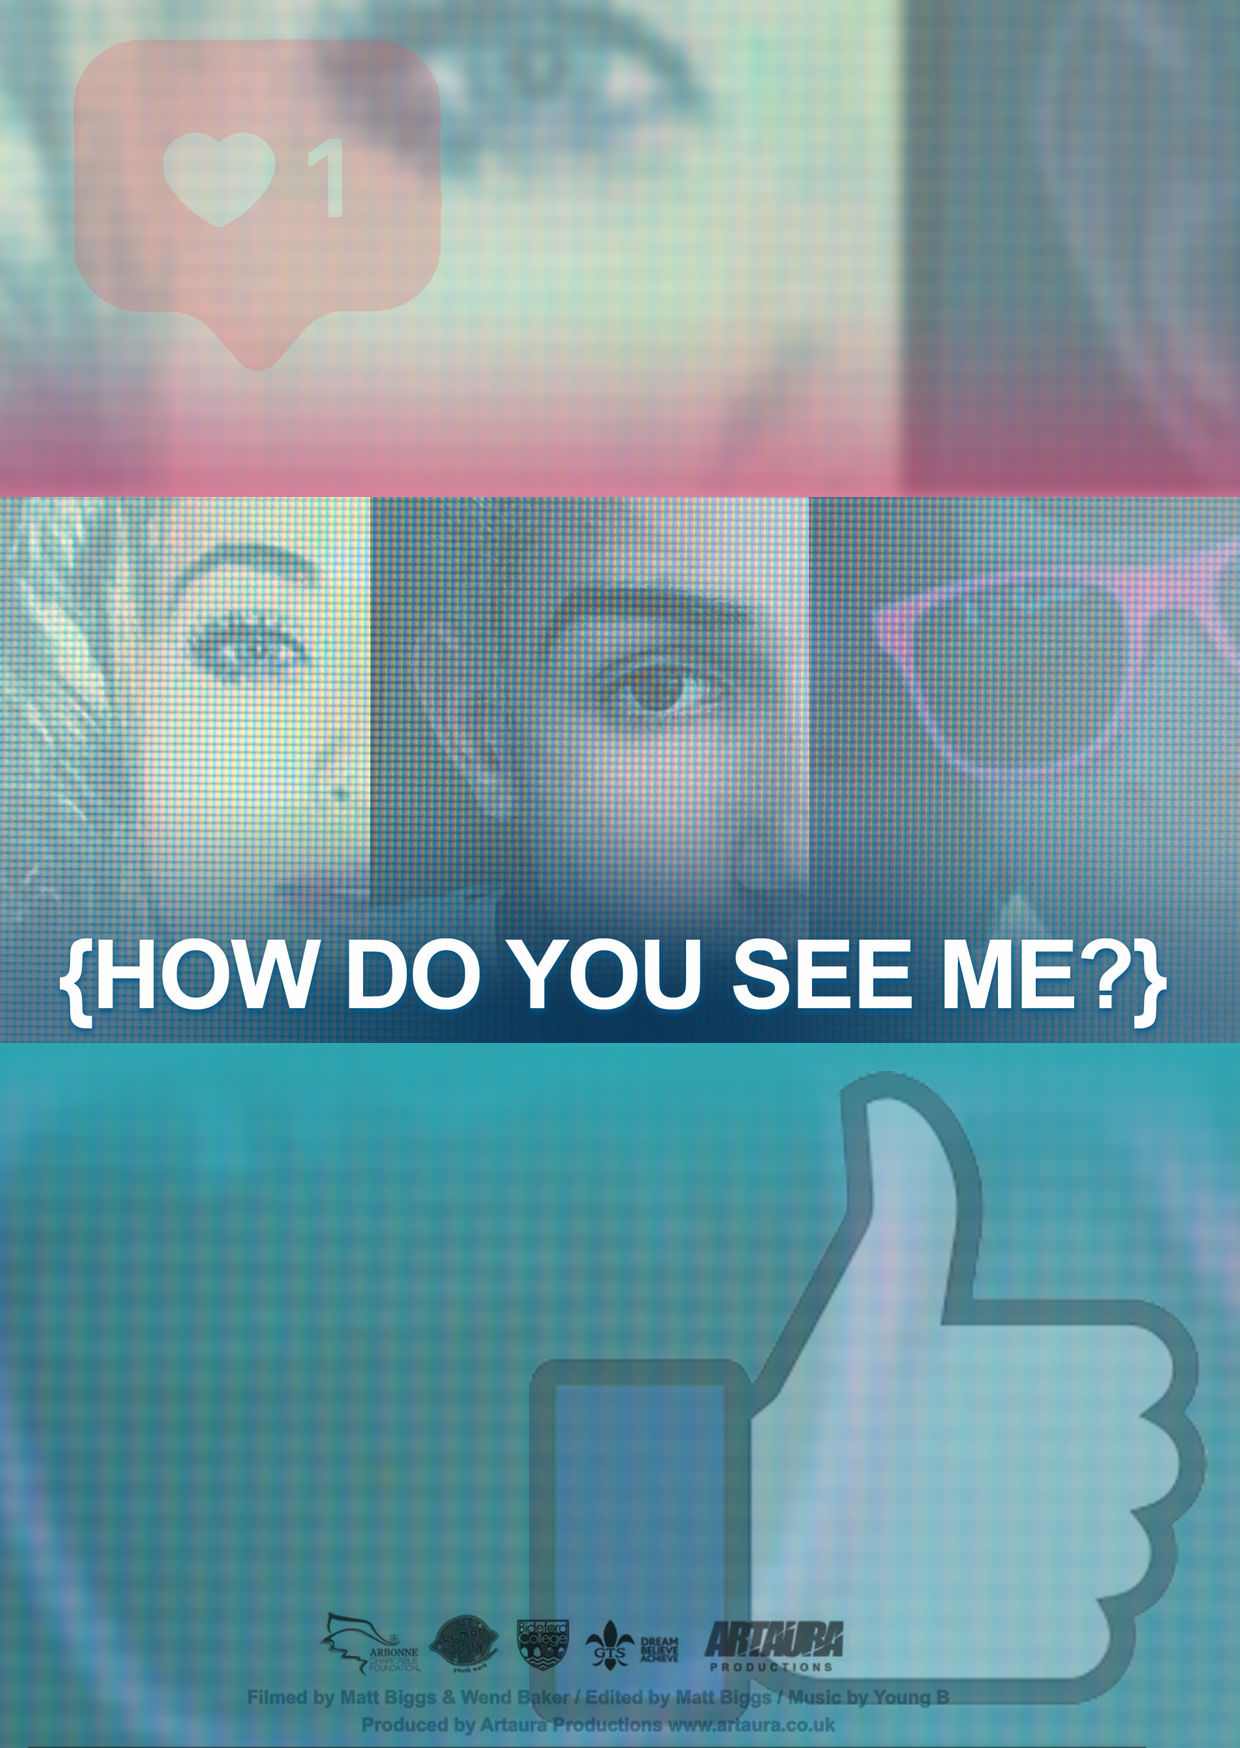 {HOW DO YOU SEE ME?}